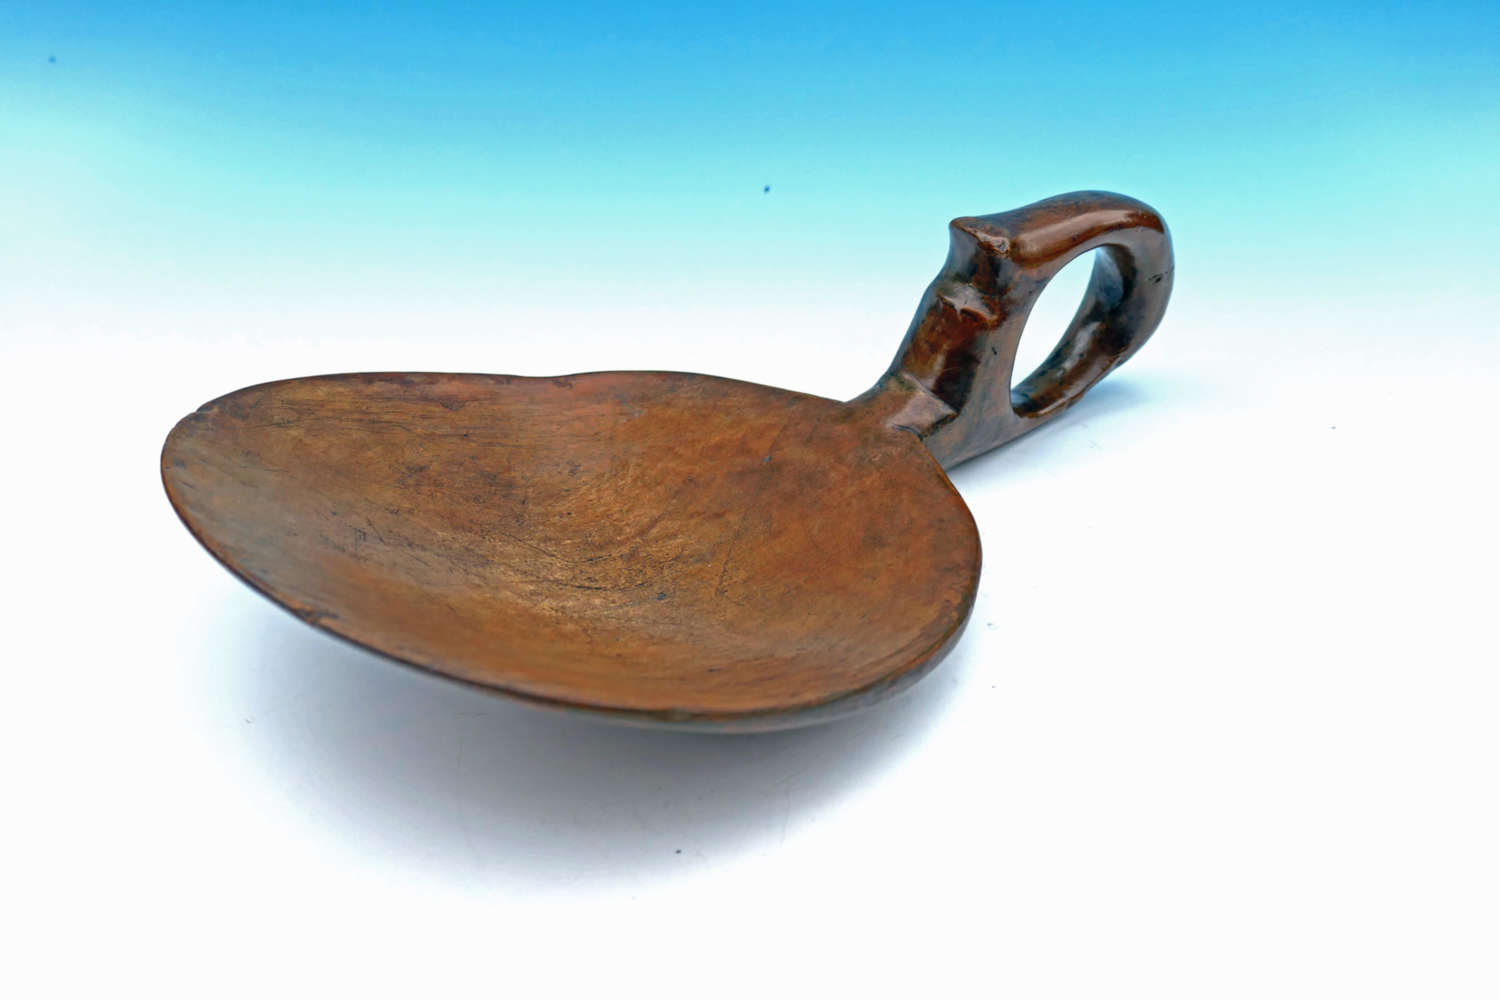 Antique 19thc Treen Sycamore Dairy Skimmer. Welsh C1820-40.